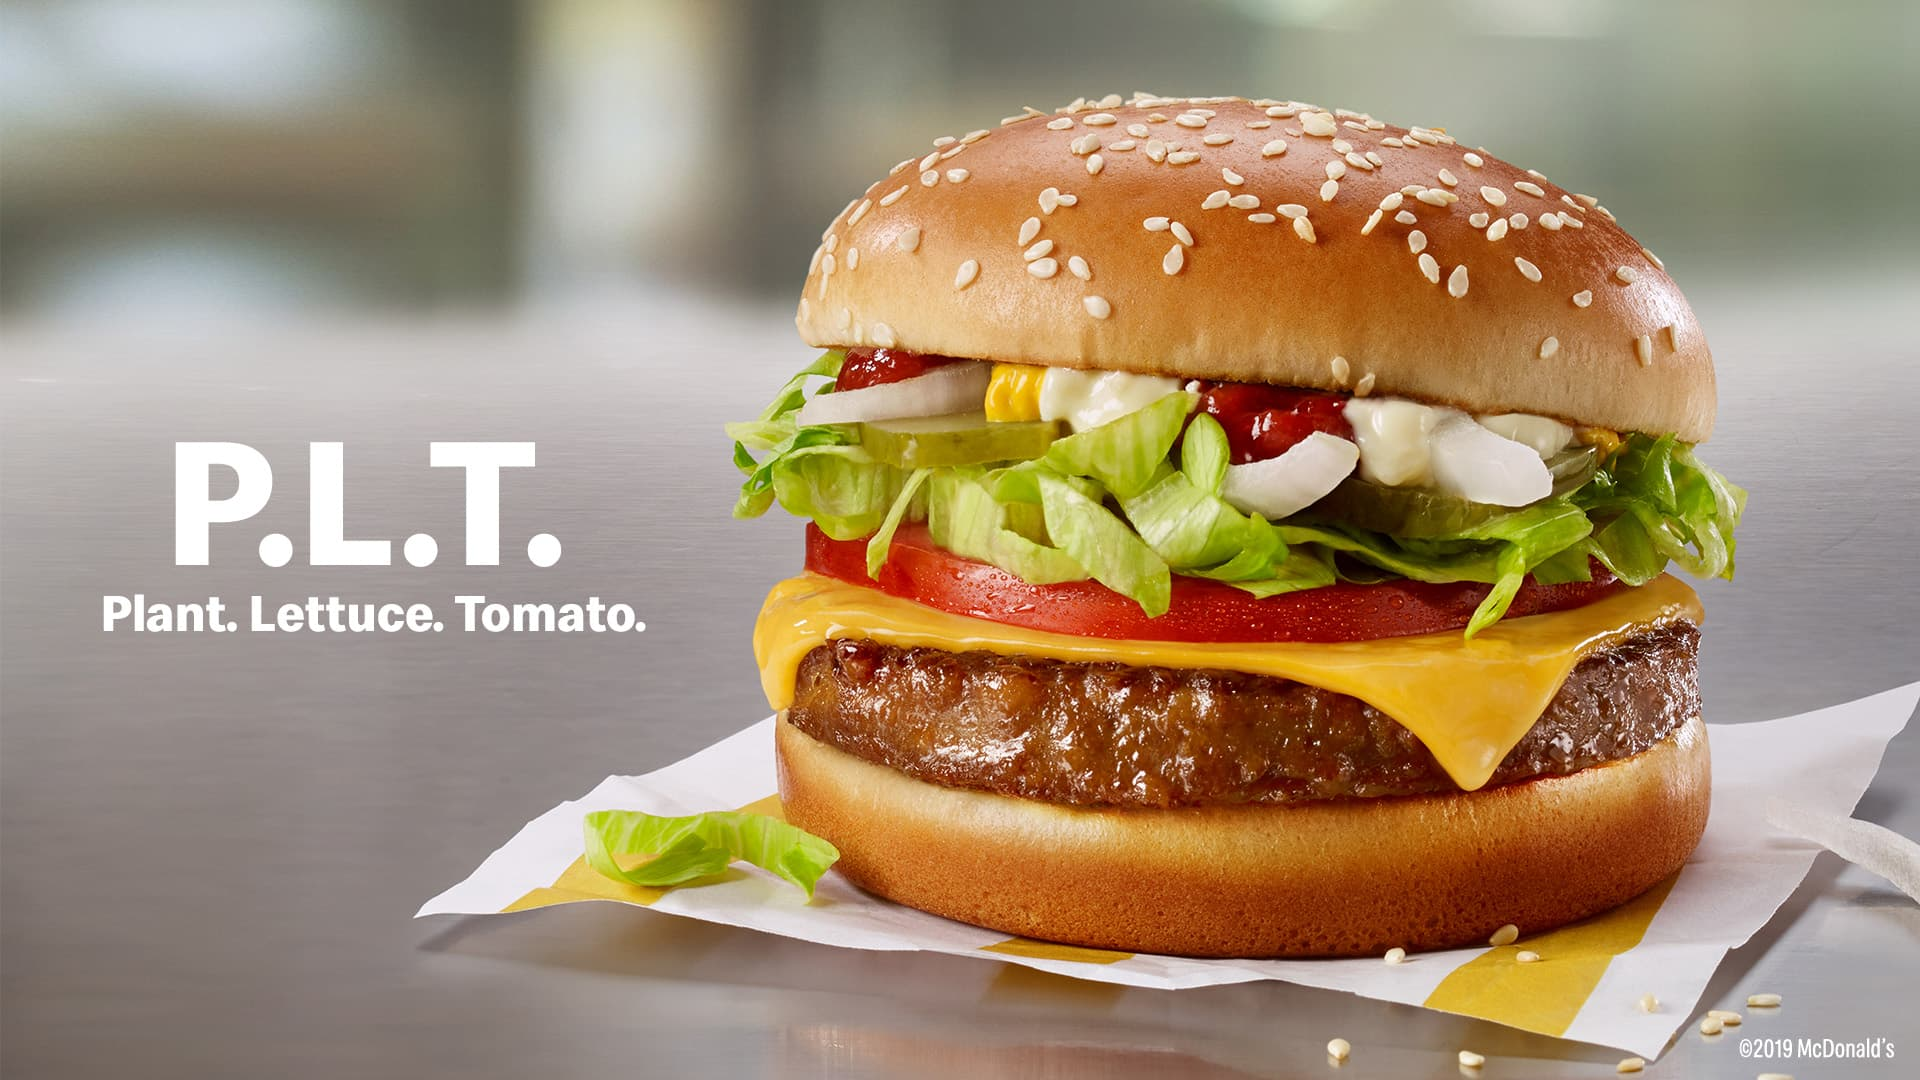 Mcdonalds New Dollar Menu 2020.Mcdonald S Launches Plant Based Burger War Showdown With